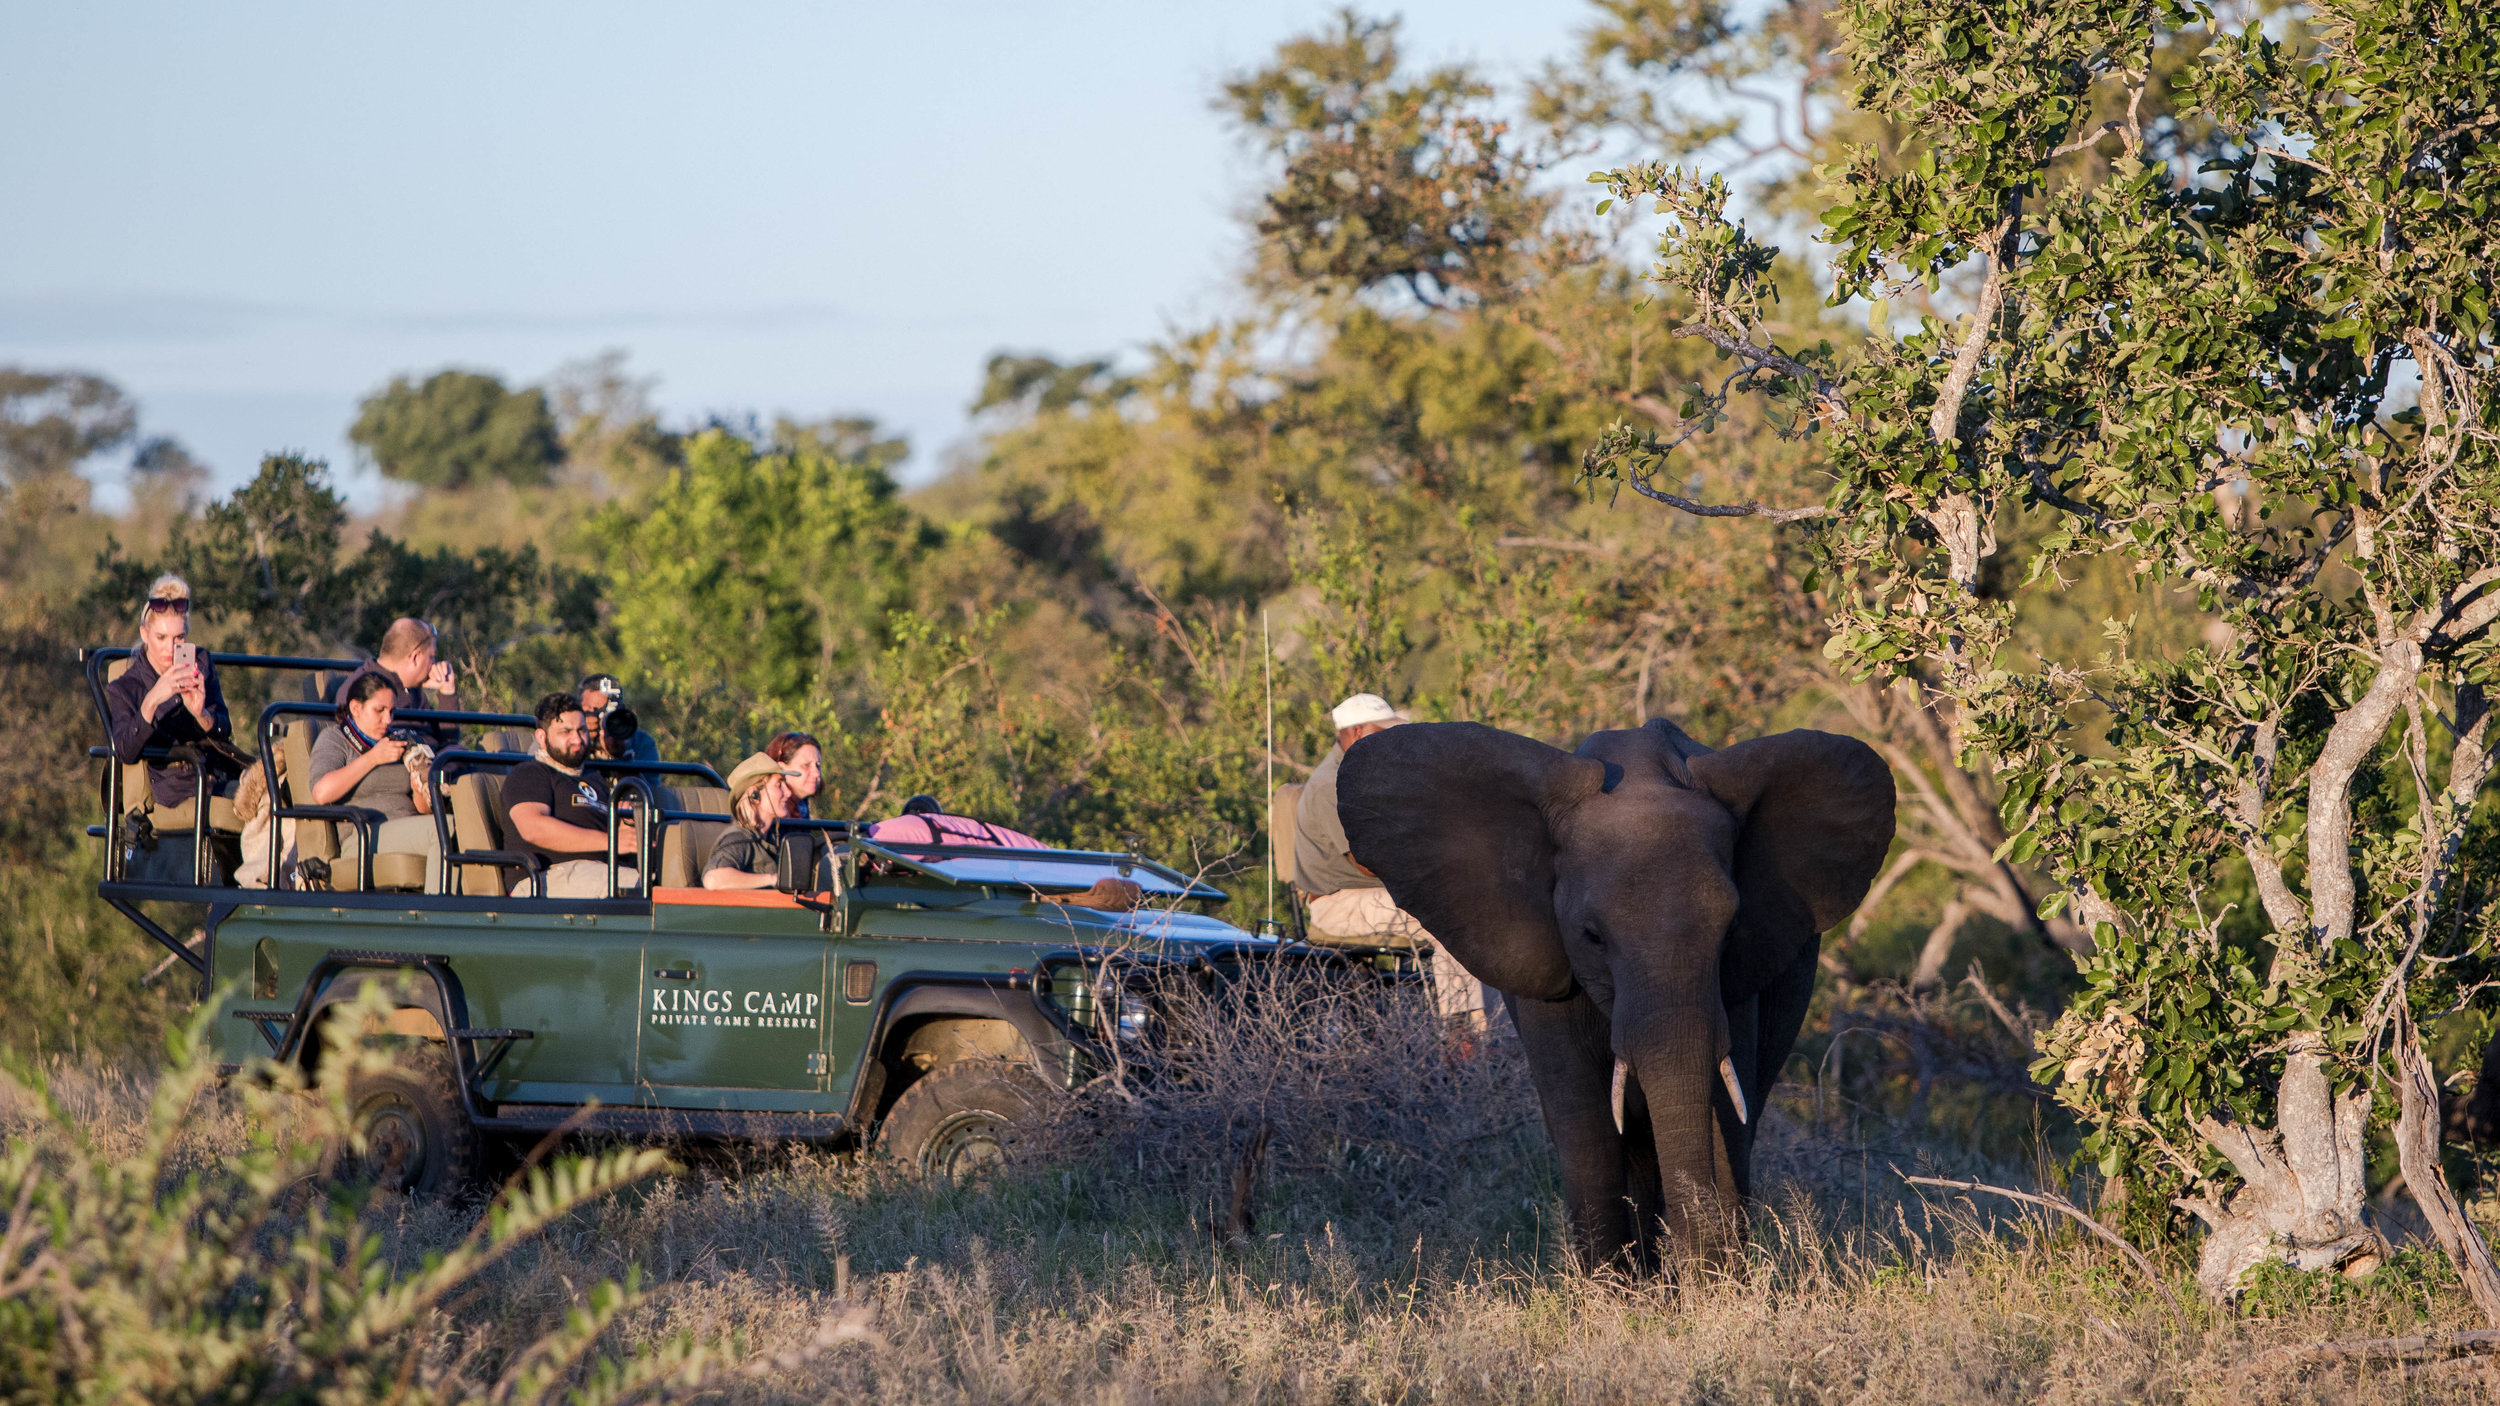 Game Drive - When you are in the safari vehicle exploring the wilderness in search of wildlife and birds. Usually a 3 hour drive, twice a day, however, this can vary.